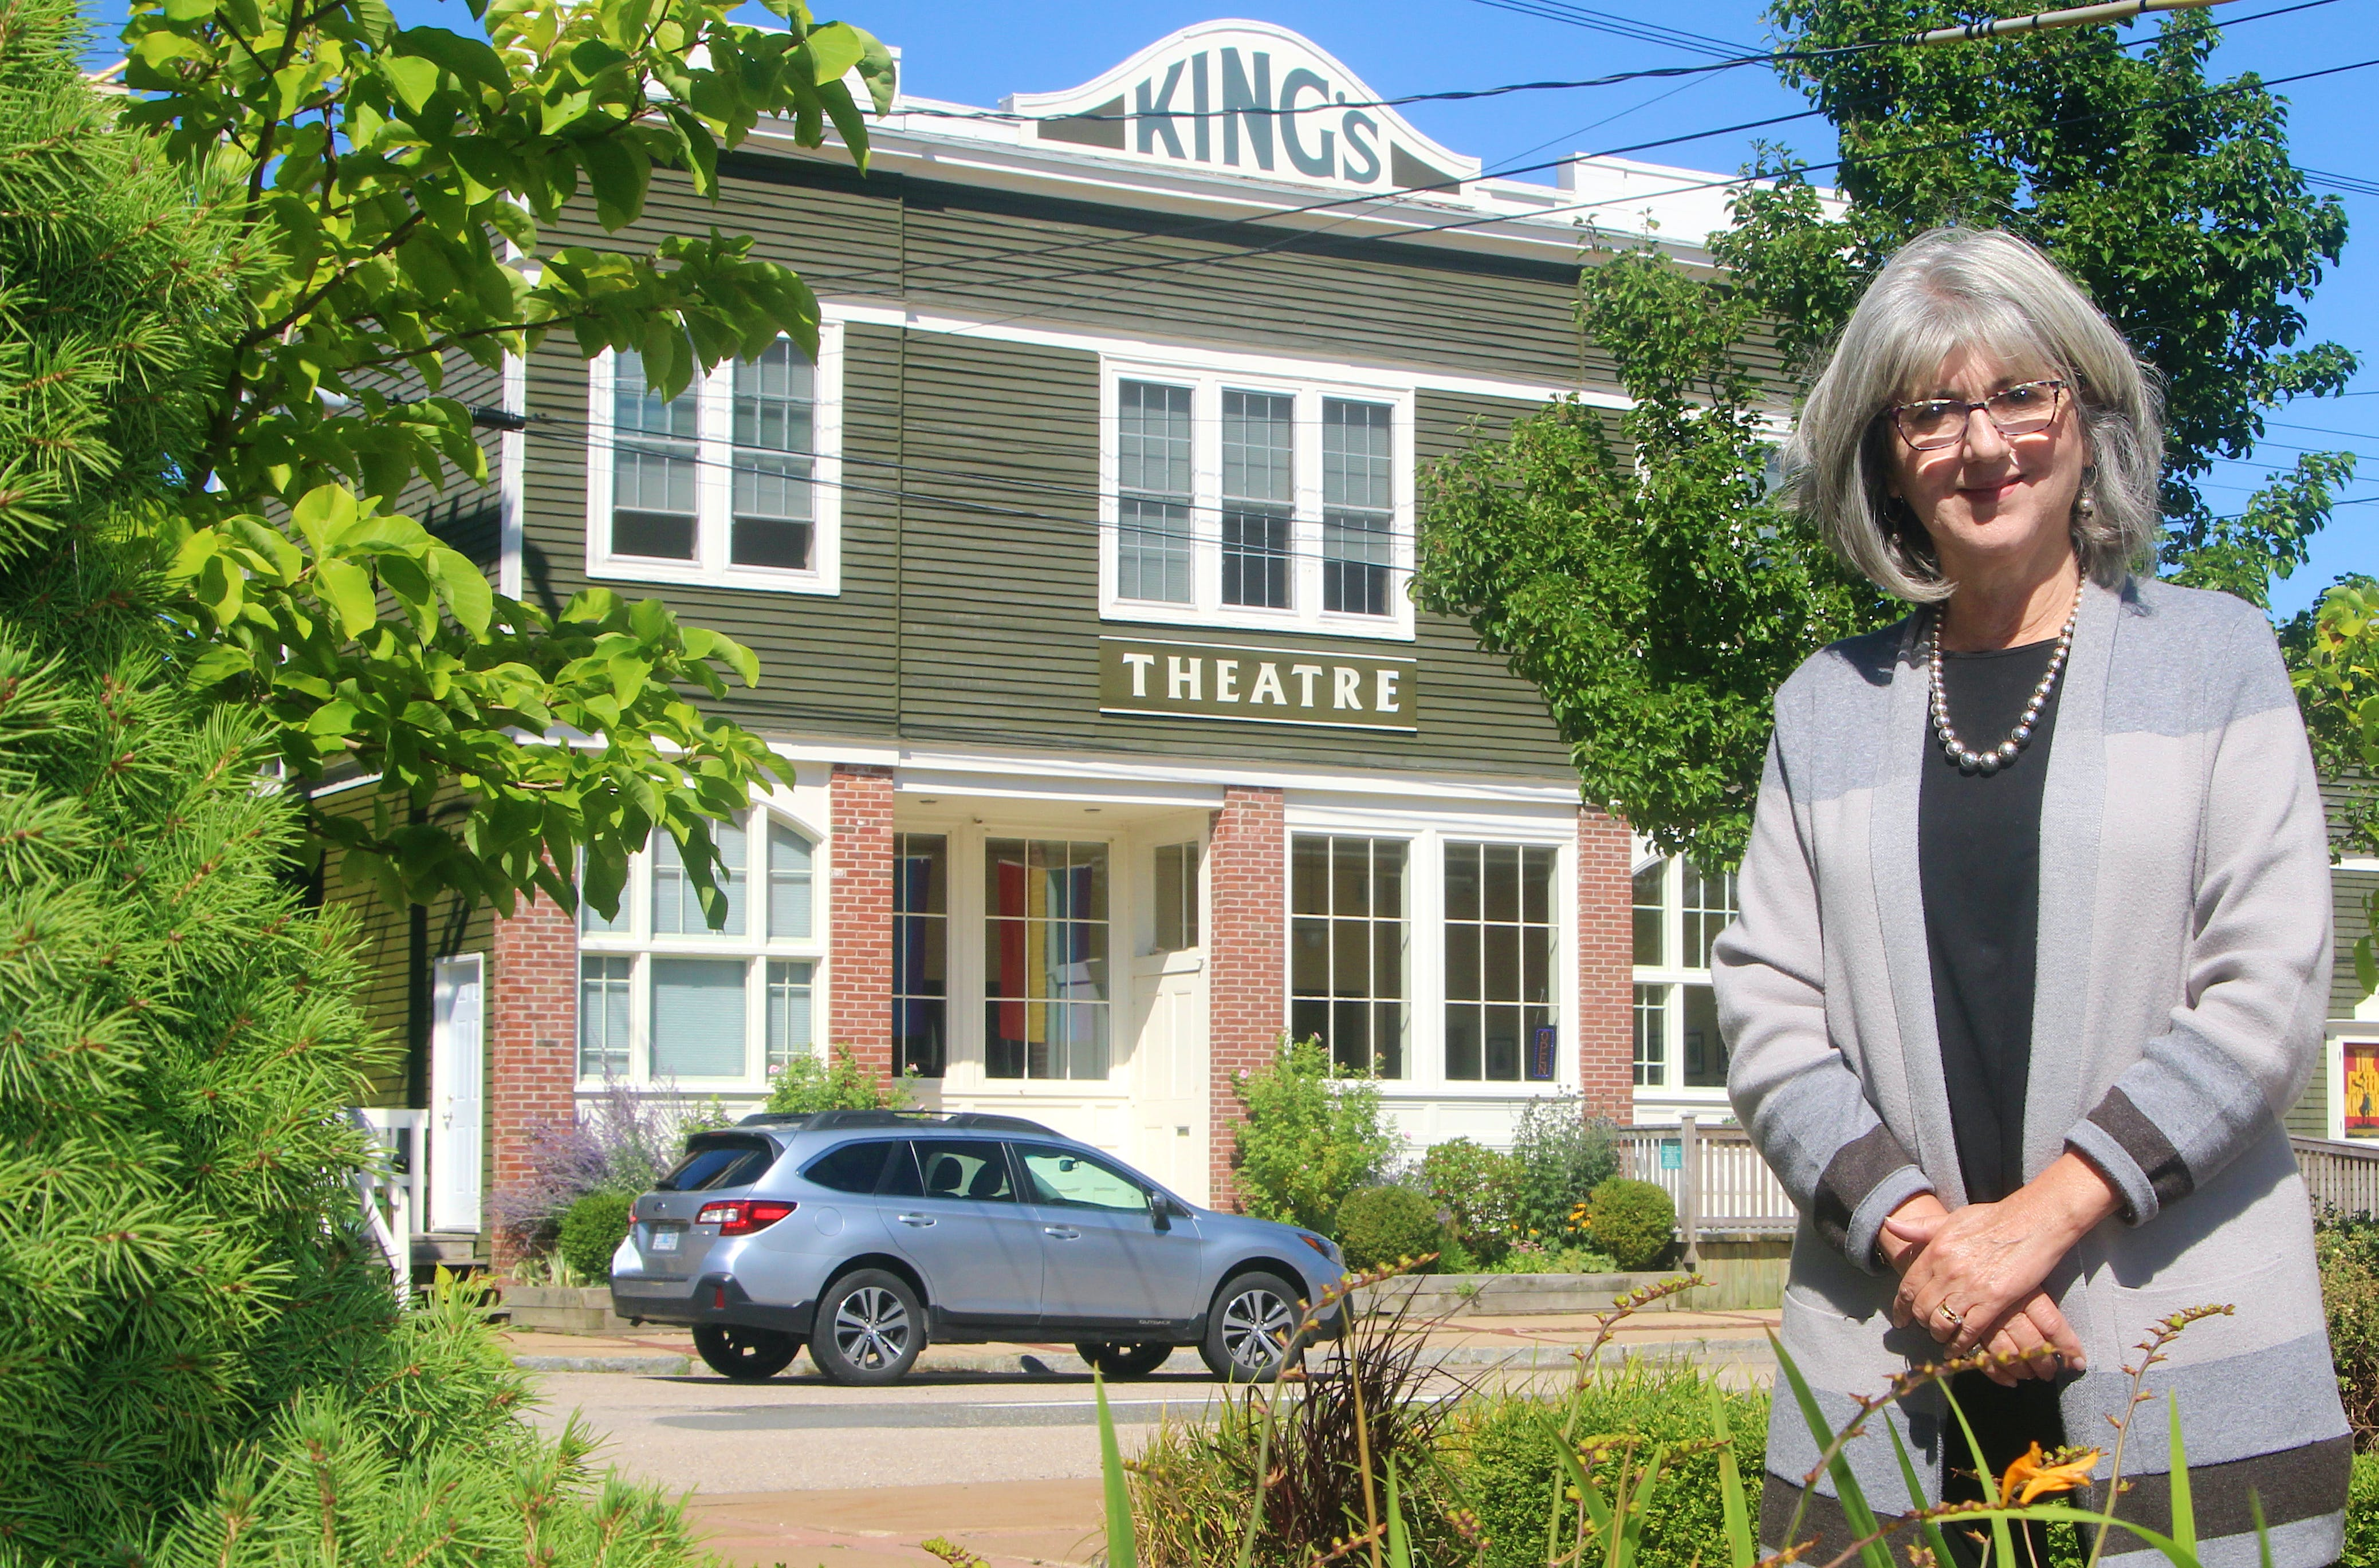 Jane Nicholson produced the documentary RURAL RENAISSANCE: How Canada's Oldest Town Reinvented Itself. The decisions 40 years ago changed the economic trajectory of Annapolis Royal.